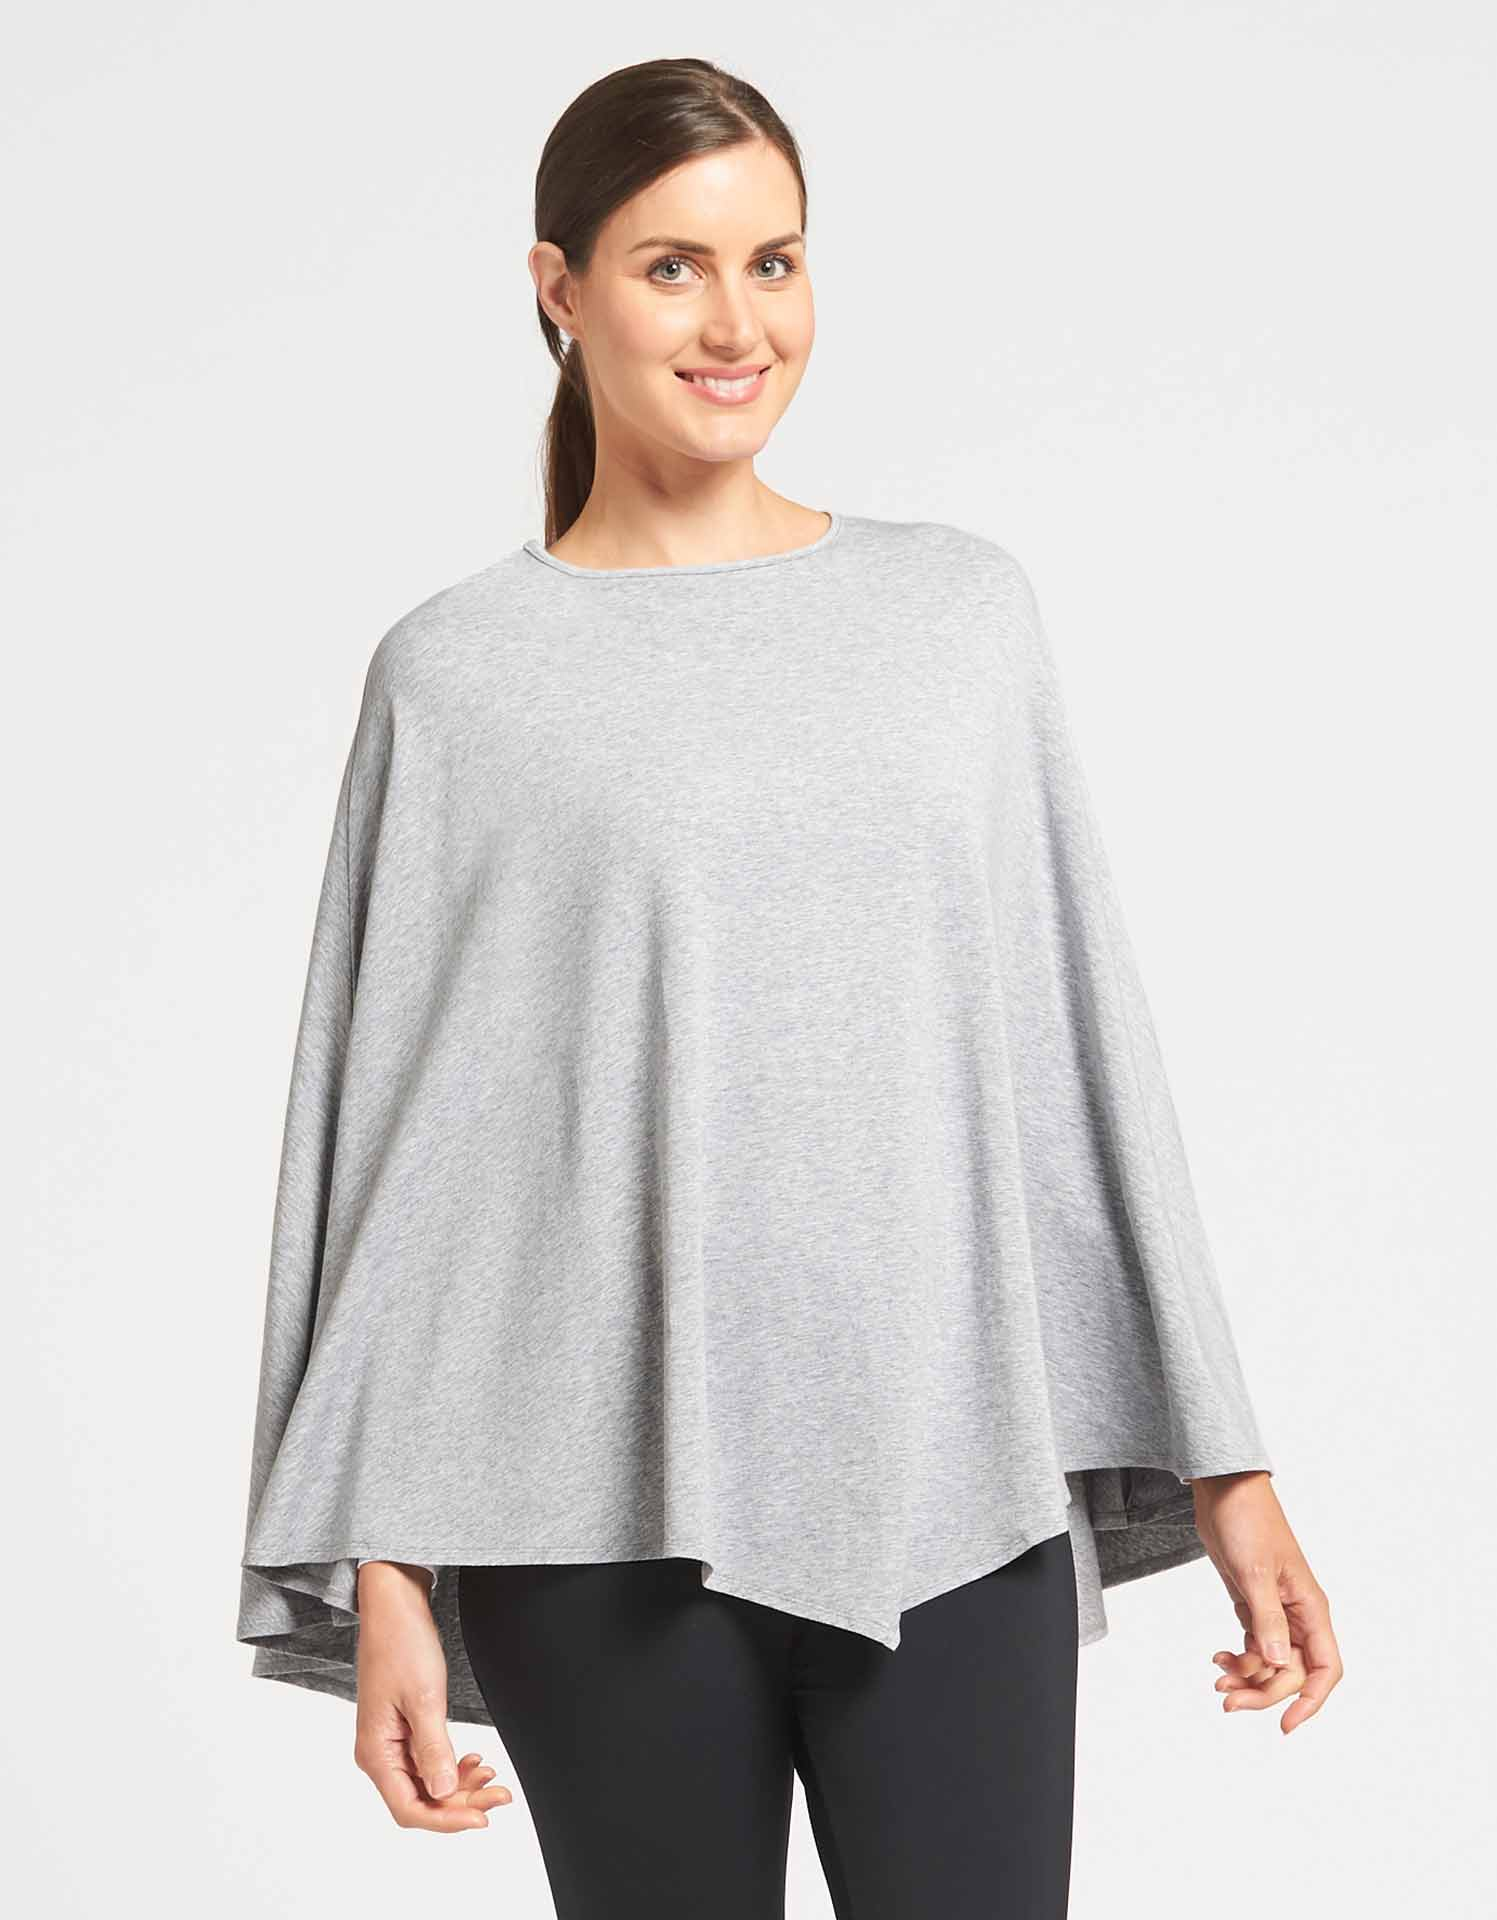 Solbari Sun Protection Clothing UPF50+ Protective Poncho in Light Grey Marle